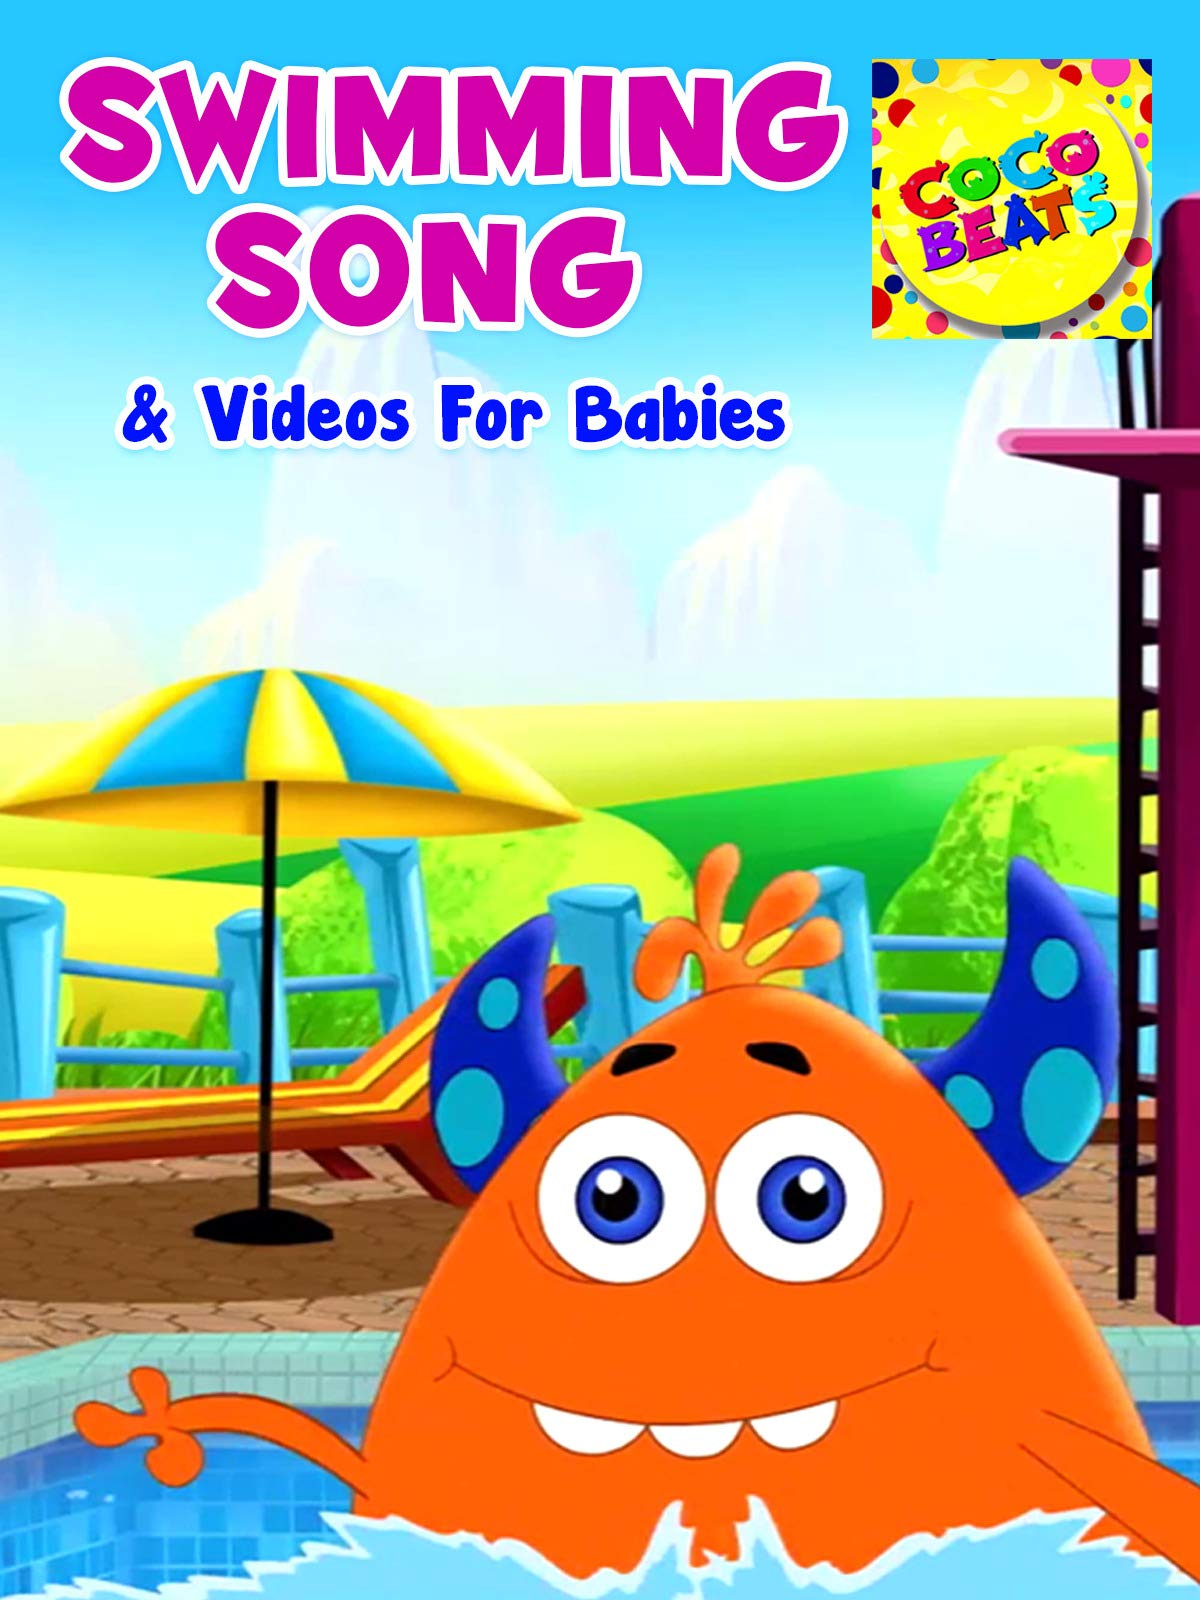 Swimming Song and Videos For Babies - Coco Beats